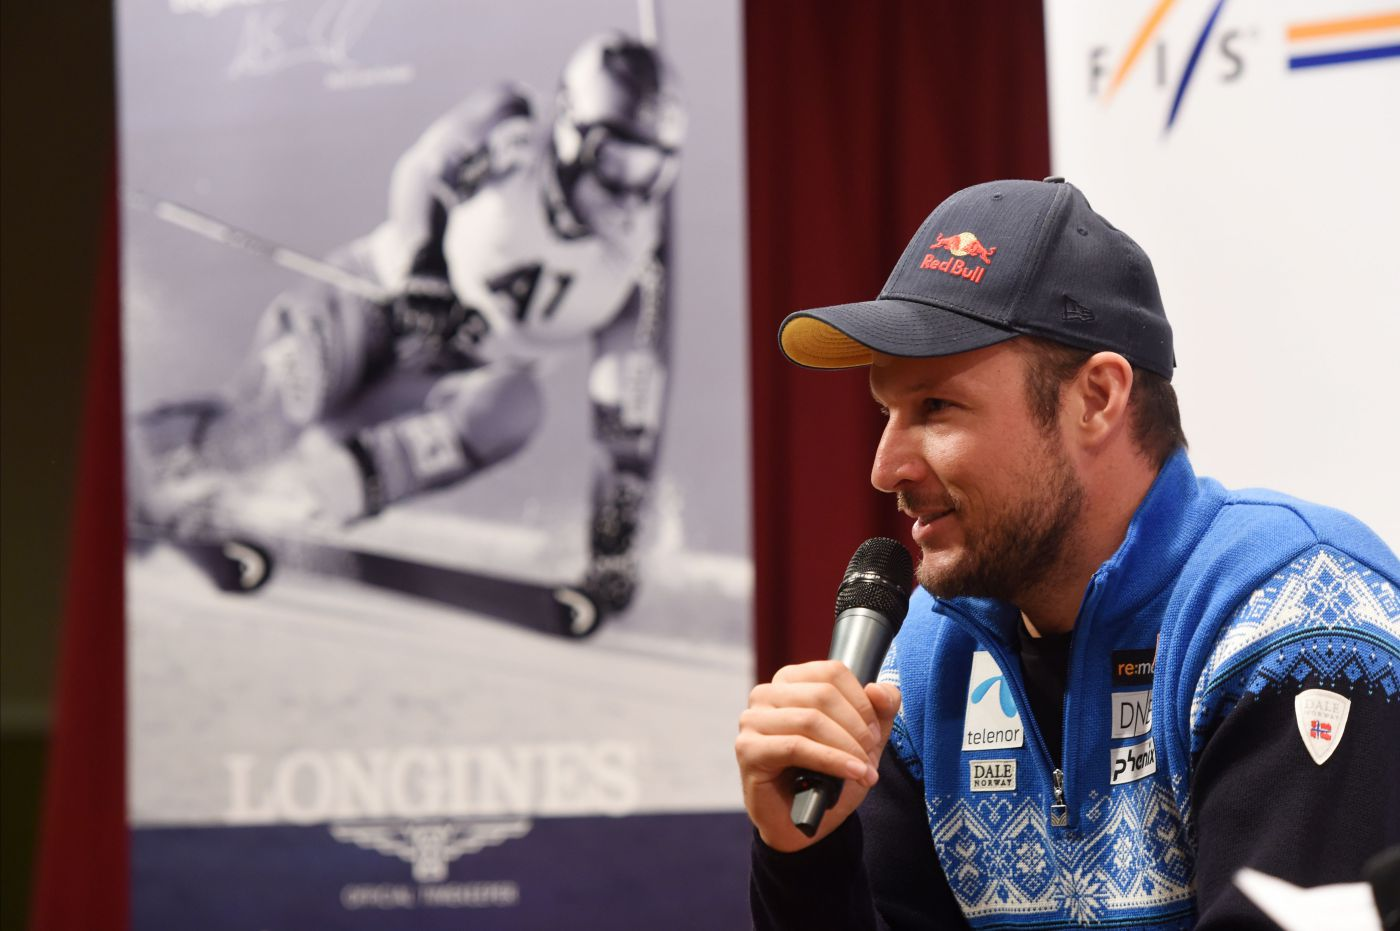 Longines Alpine Skiing Event: Kick-off of the new FIS Alpine Ski World Cup season in Sölden 1